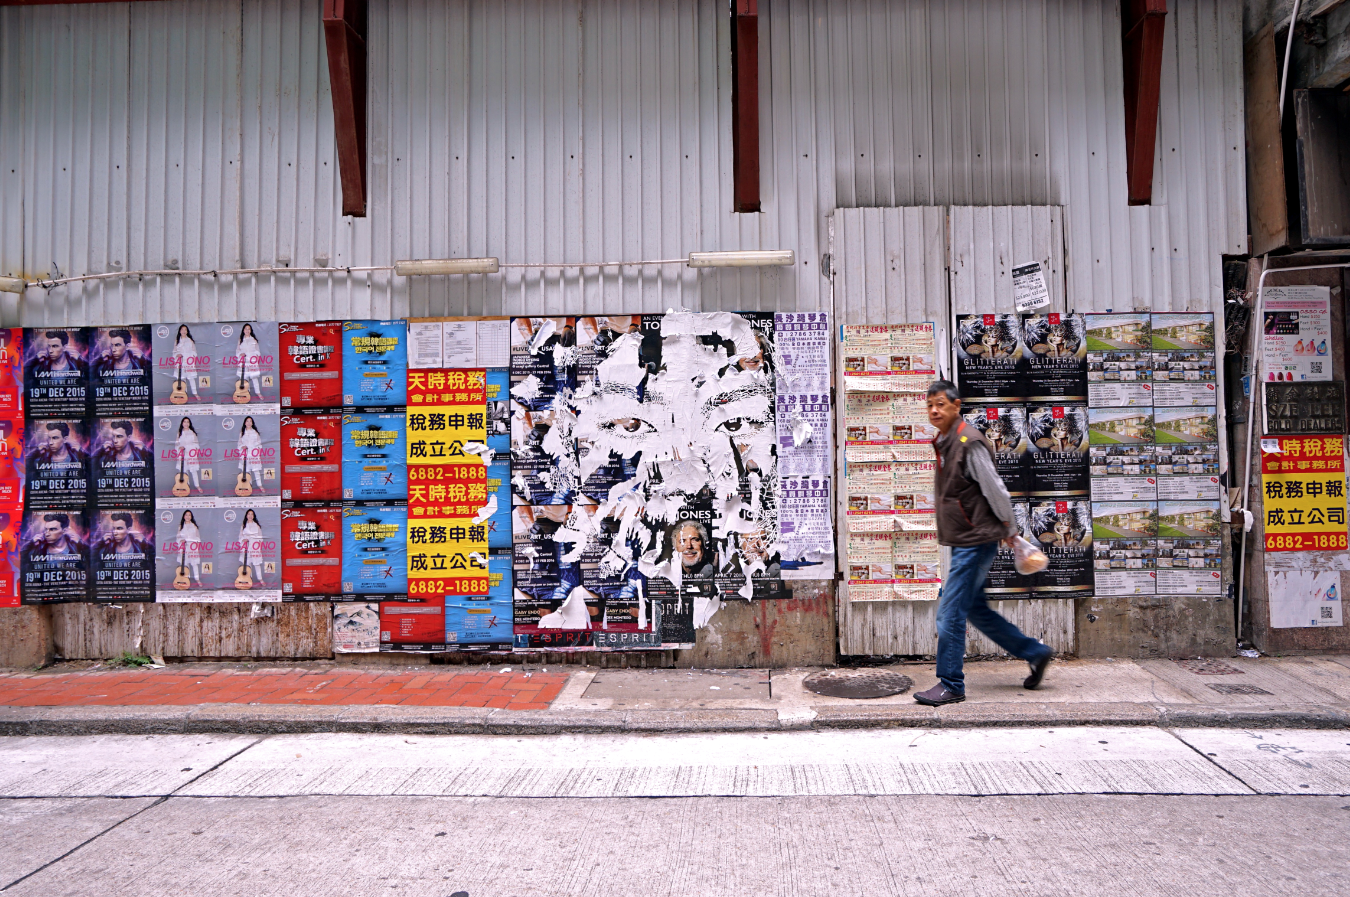 A Vhils work in Hong Kong